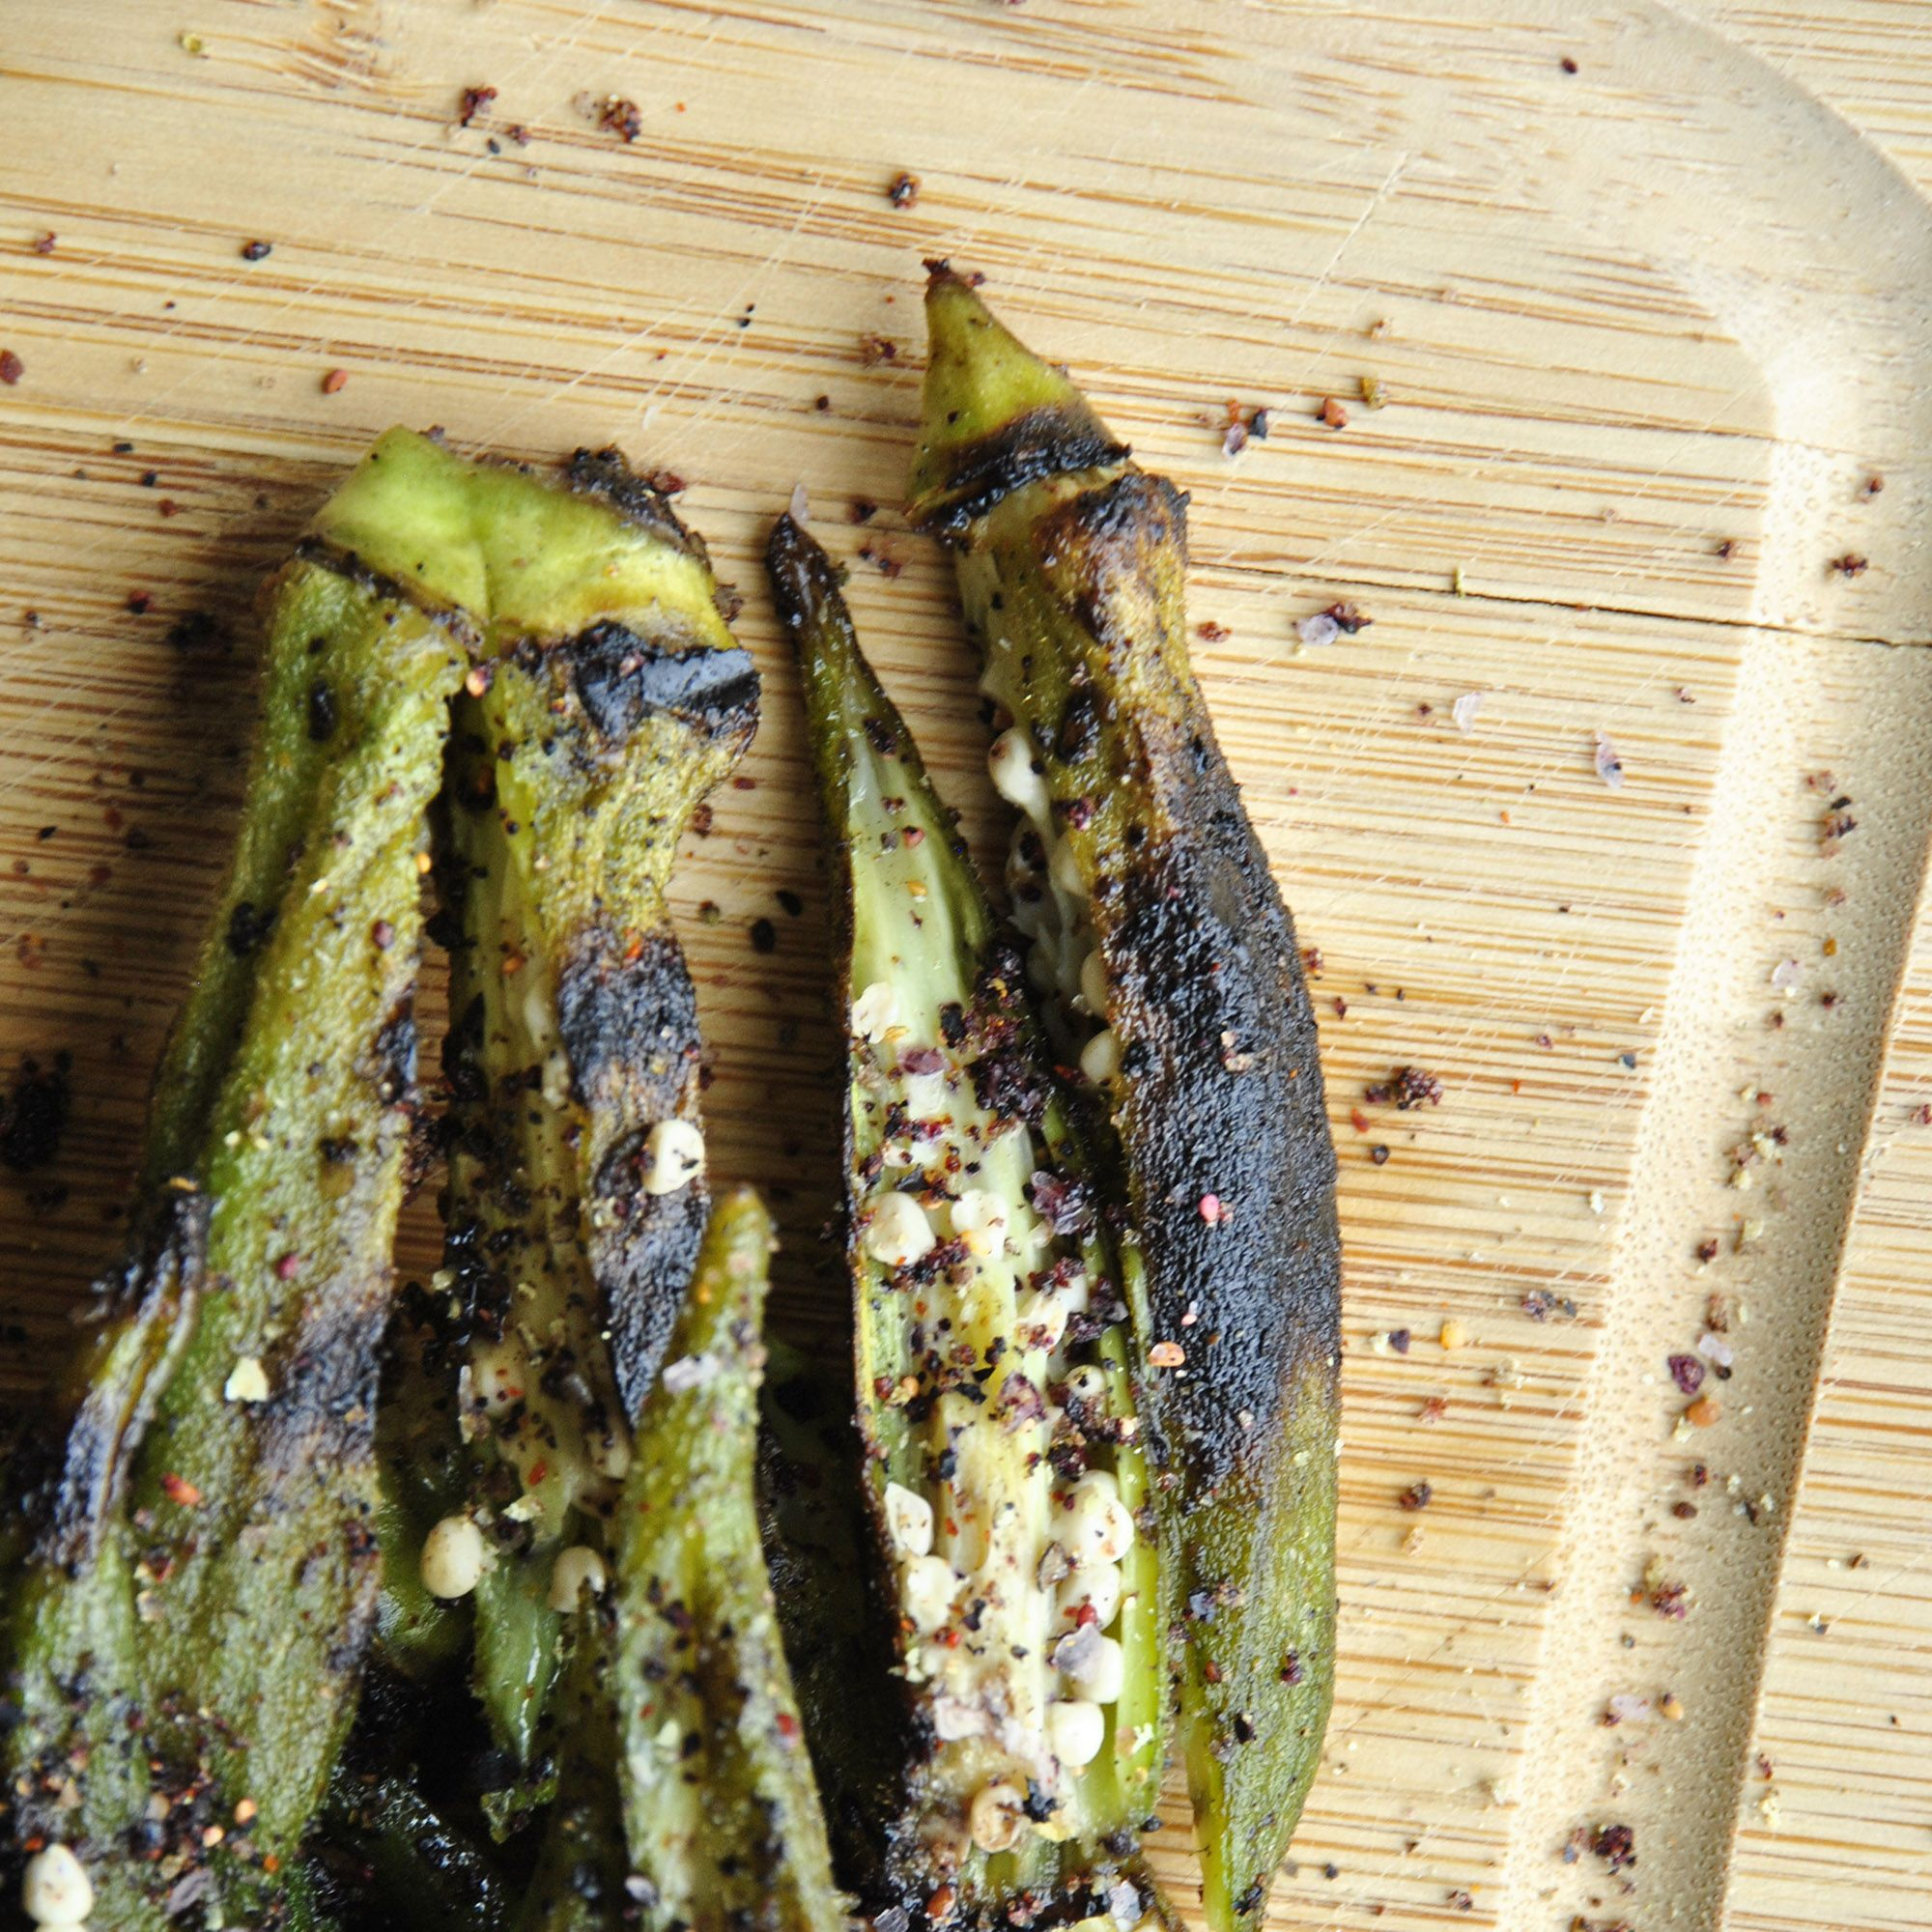 """<p><a href=""""http://blog.sanuraweathers.com/2015/04/whats-not-to-like-about-okra/"""" target=""""_blank"""">Blueberry-Coffee Spice Grilled Okra</a> </p><p>By Sanura Weathers of <a href=""""http://blog.sanuraweathers.com/"""" target=""""_blank"""">My Life Runs on Food</a><br></p><p><strong>Ingredients: <br></strong></p><ul><li>1 lb. fresh okra pods, gently scrubbed cleaned</li><li>4 tbsp. of peanut or neutral oil</li><li>About ¼ cup Blueberry-Coffee Spice Rub (or use blackened seasoning), plus more for garnish</li><li>A pinch of sea salt, to taste</li><li>A pinch of fresh black pepper, to taste</li></ul><p><strong>Directions:</strong></p><ul><li>Fill a medium pot with salted water and bring to a boil. Add okra pods to blanch for about one minute. Quickly remove from pot. Rinse with cold water and strain excess water.</li><li>In a large bowl, toss blanched okra with two tablespoons of oil, Blueberry-Coffee Spice Rub, salt and black pepper.</li><li>Meanwhile, prepare an outdoor or indoor grill. If using indoor grill, heat over medium-high heat.</li><li>When the grill pan is hot, add the last two tablespoons of oil. After a few seconds, add the seasoned okra pods. Grill for about three minutes per side. Remove onto a paper-towel lined plate.</li><li>Vertically slice each grilled okra pod. Garnish with a little sprinkling of Blueberry-Coffee Spice Rub.</li><li>Enjoy.</li></ul>"""